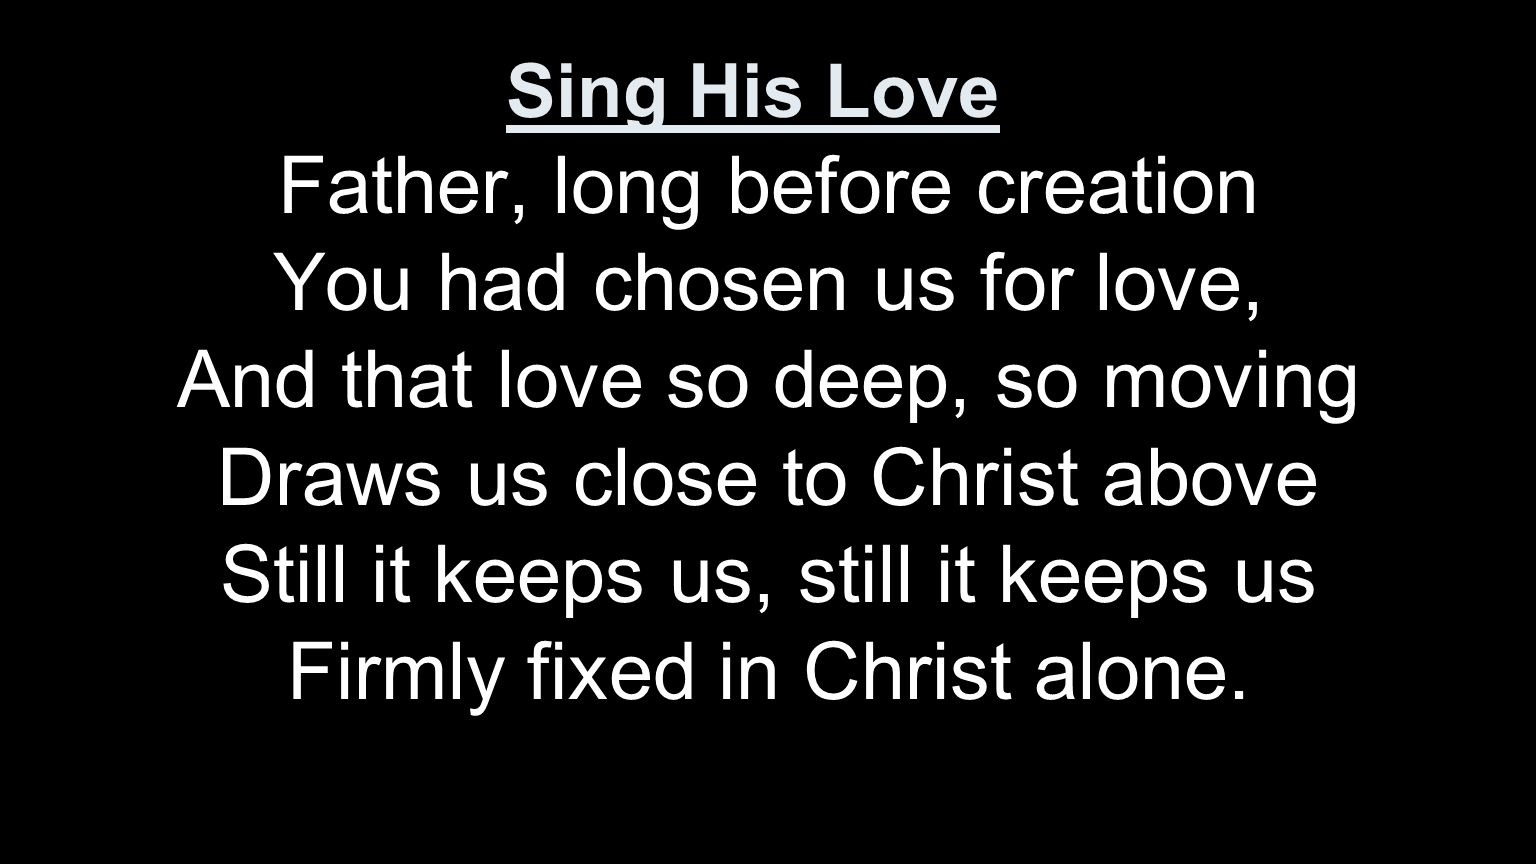 Father, long before creation You had chosen us for love,